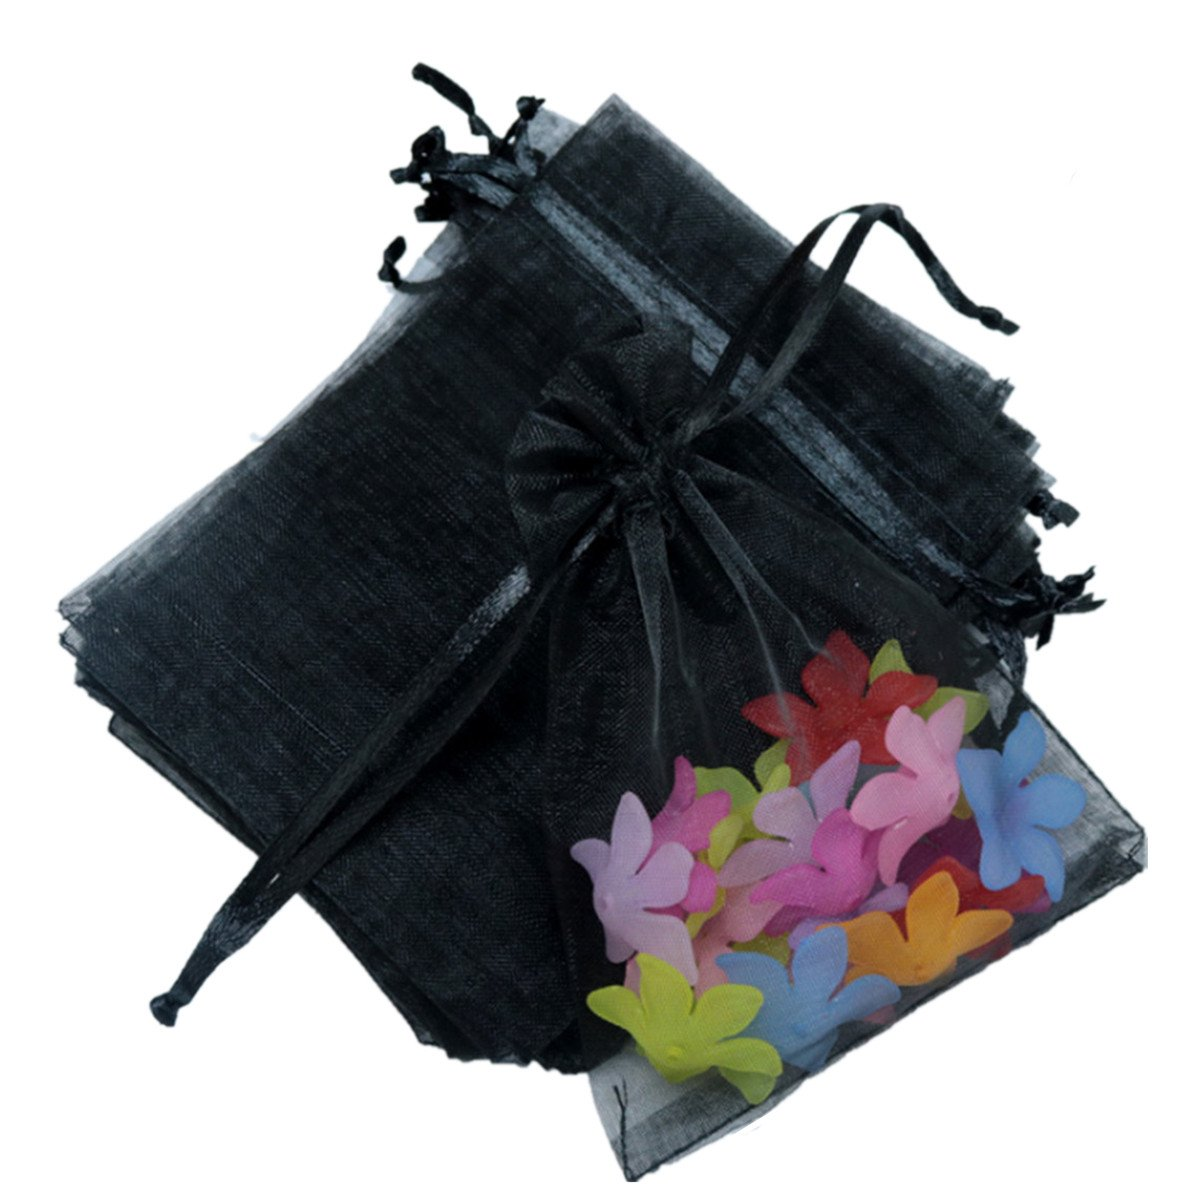 E Support 100Pcs Organza Pouches Tulle Sheer Drawstring For Jewelry Candy Wedding Party Christmas Favor Gift Bags 5.11x7.08 (Black)